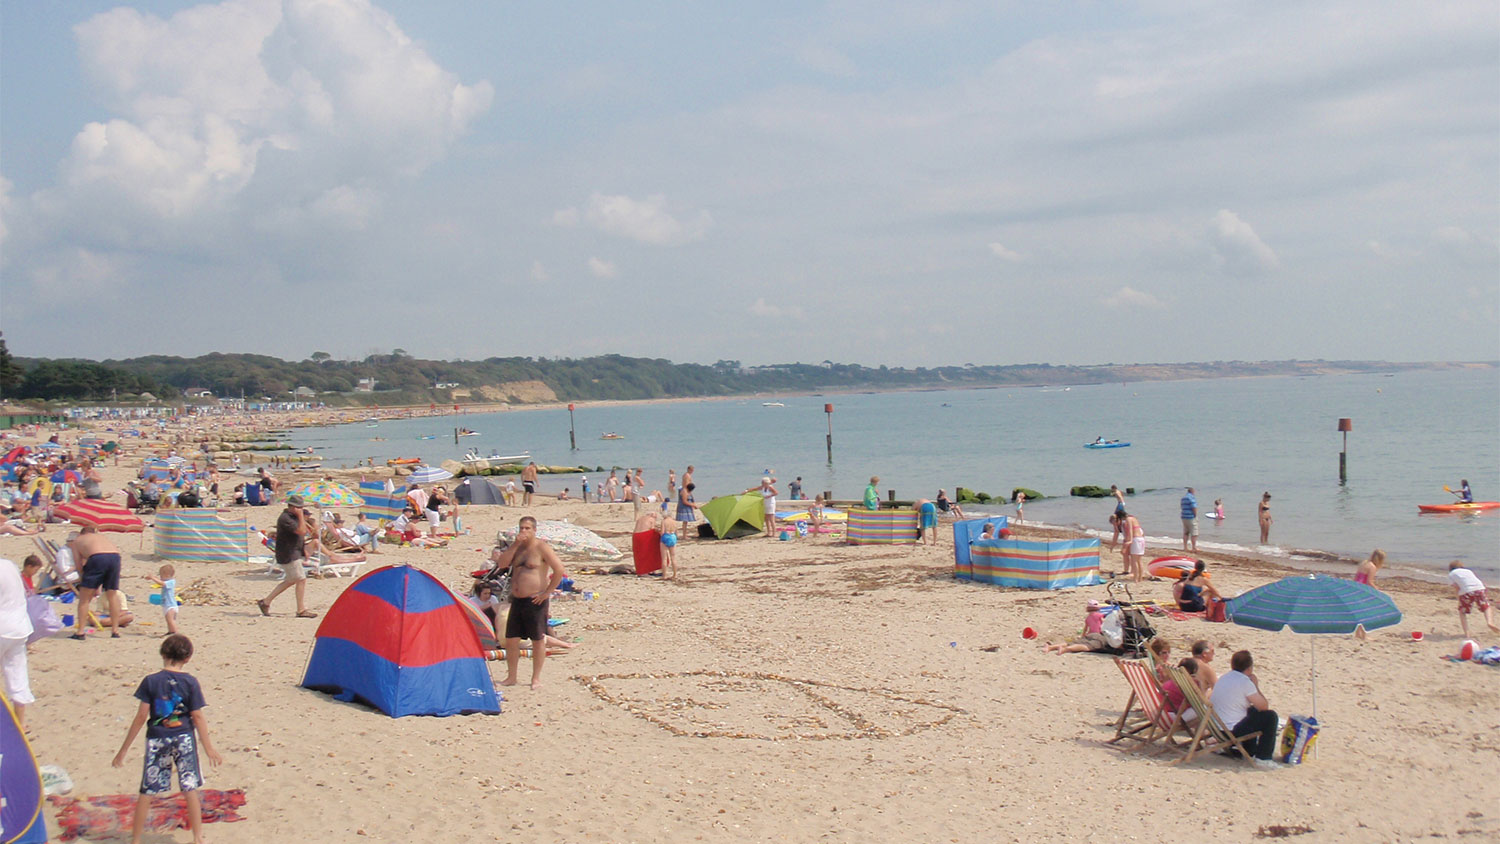 Avon Beach at Christchurch in Dorset is an RNLI lifeguarded beach.